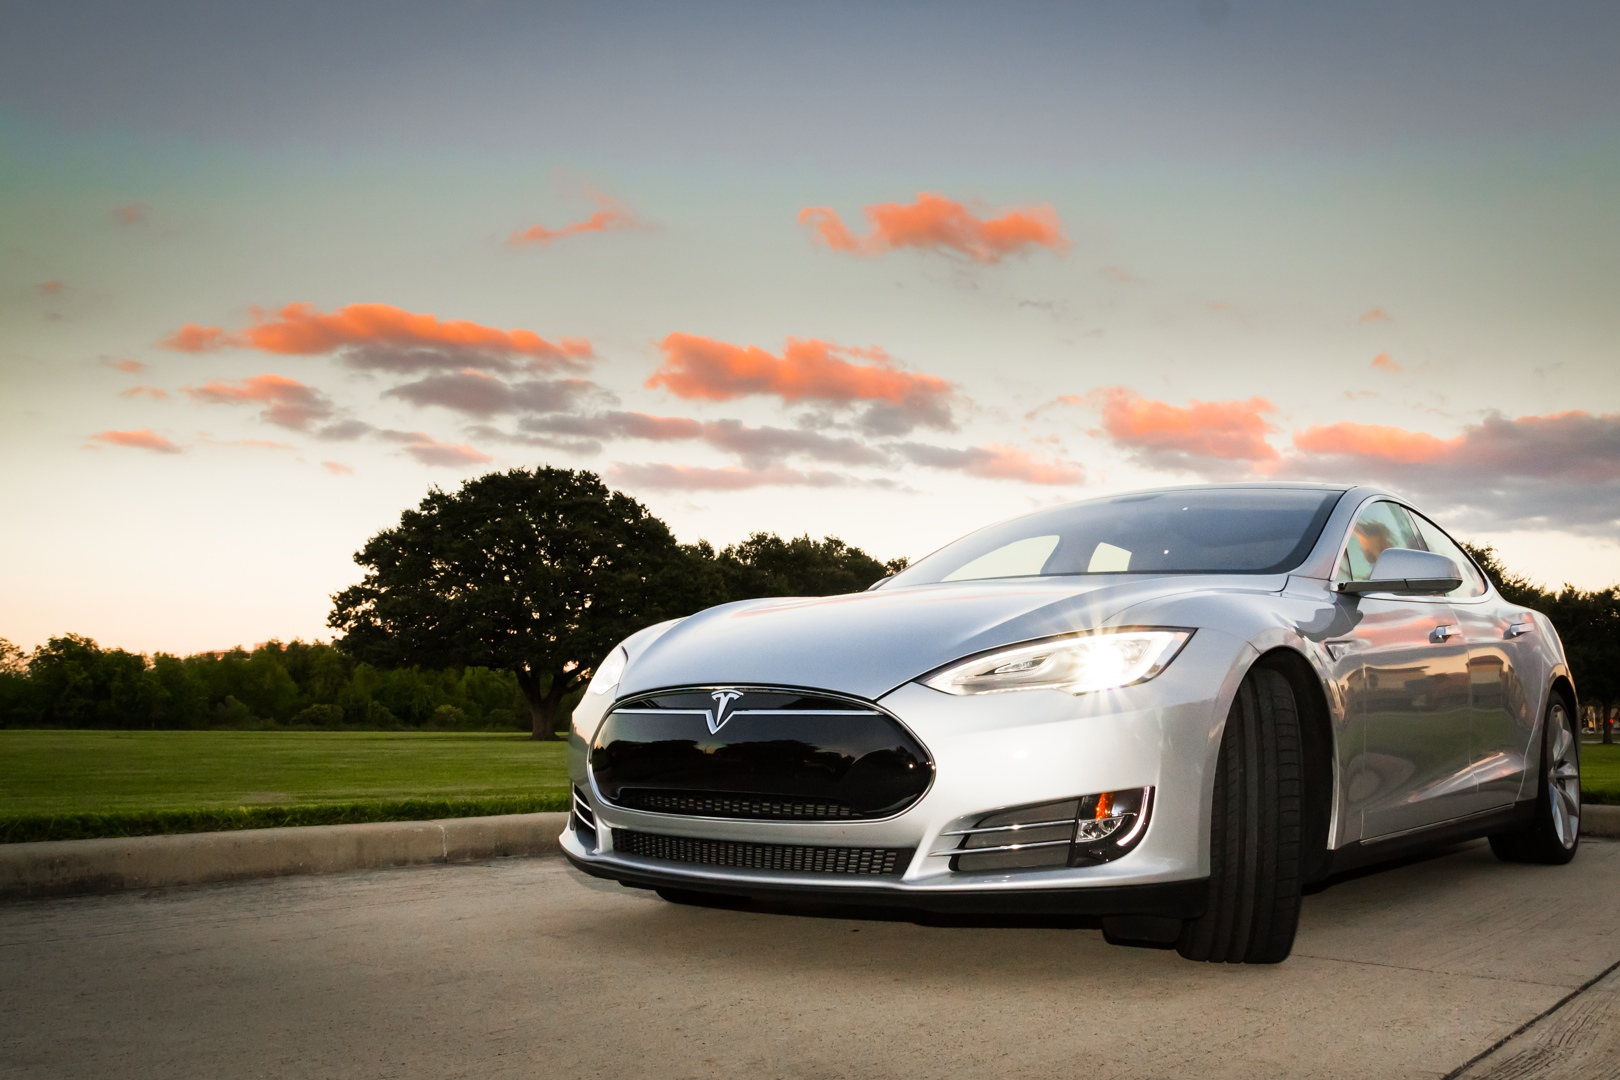 Model 3 will be tesla motors electric car for the masses for Tesla motors car price